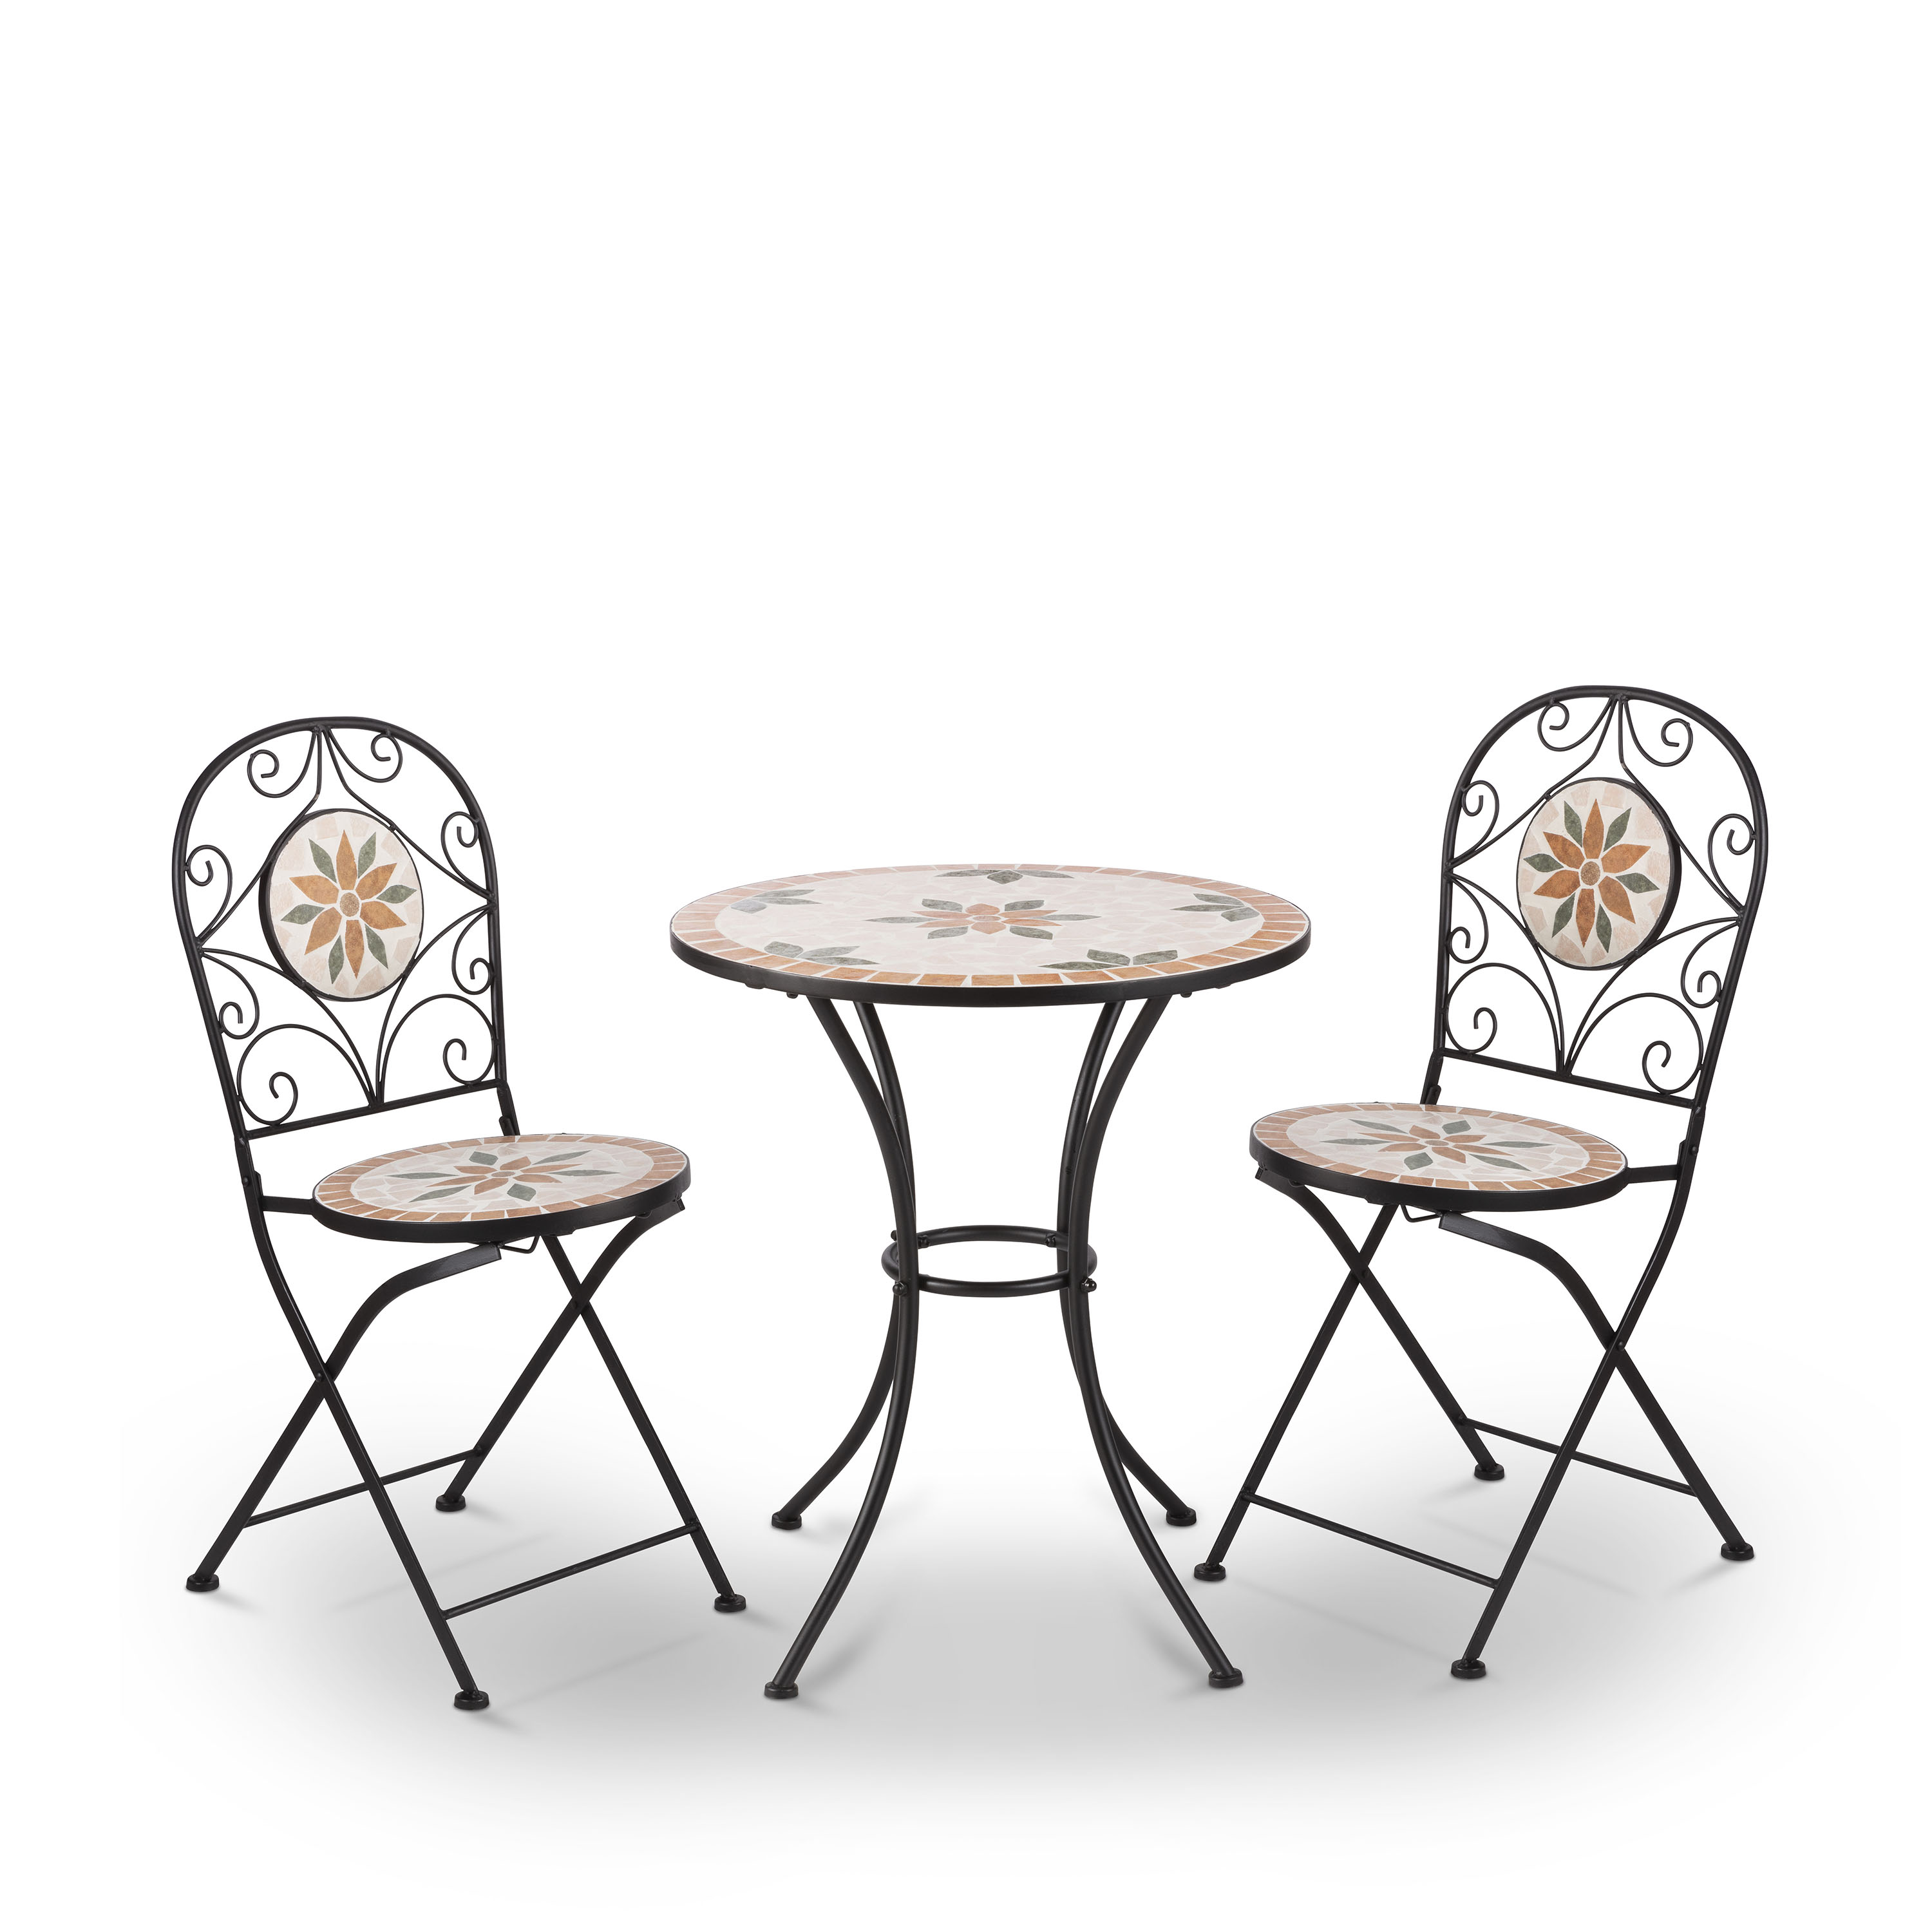 Alpine Mosaic Wrought Iron 3 Piece Bistro Set - Outdoor ... on Outdoor Living Iron Mosaic id=64162